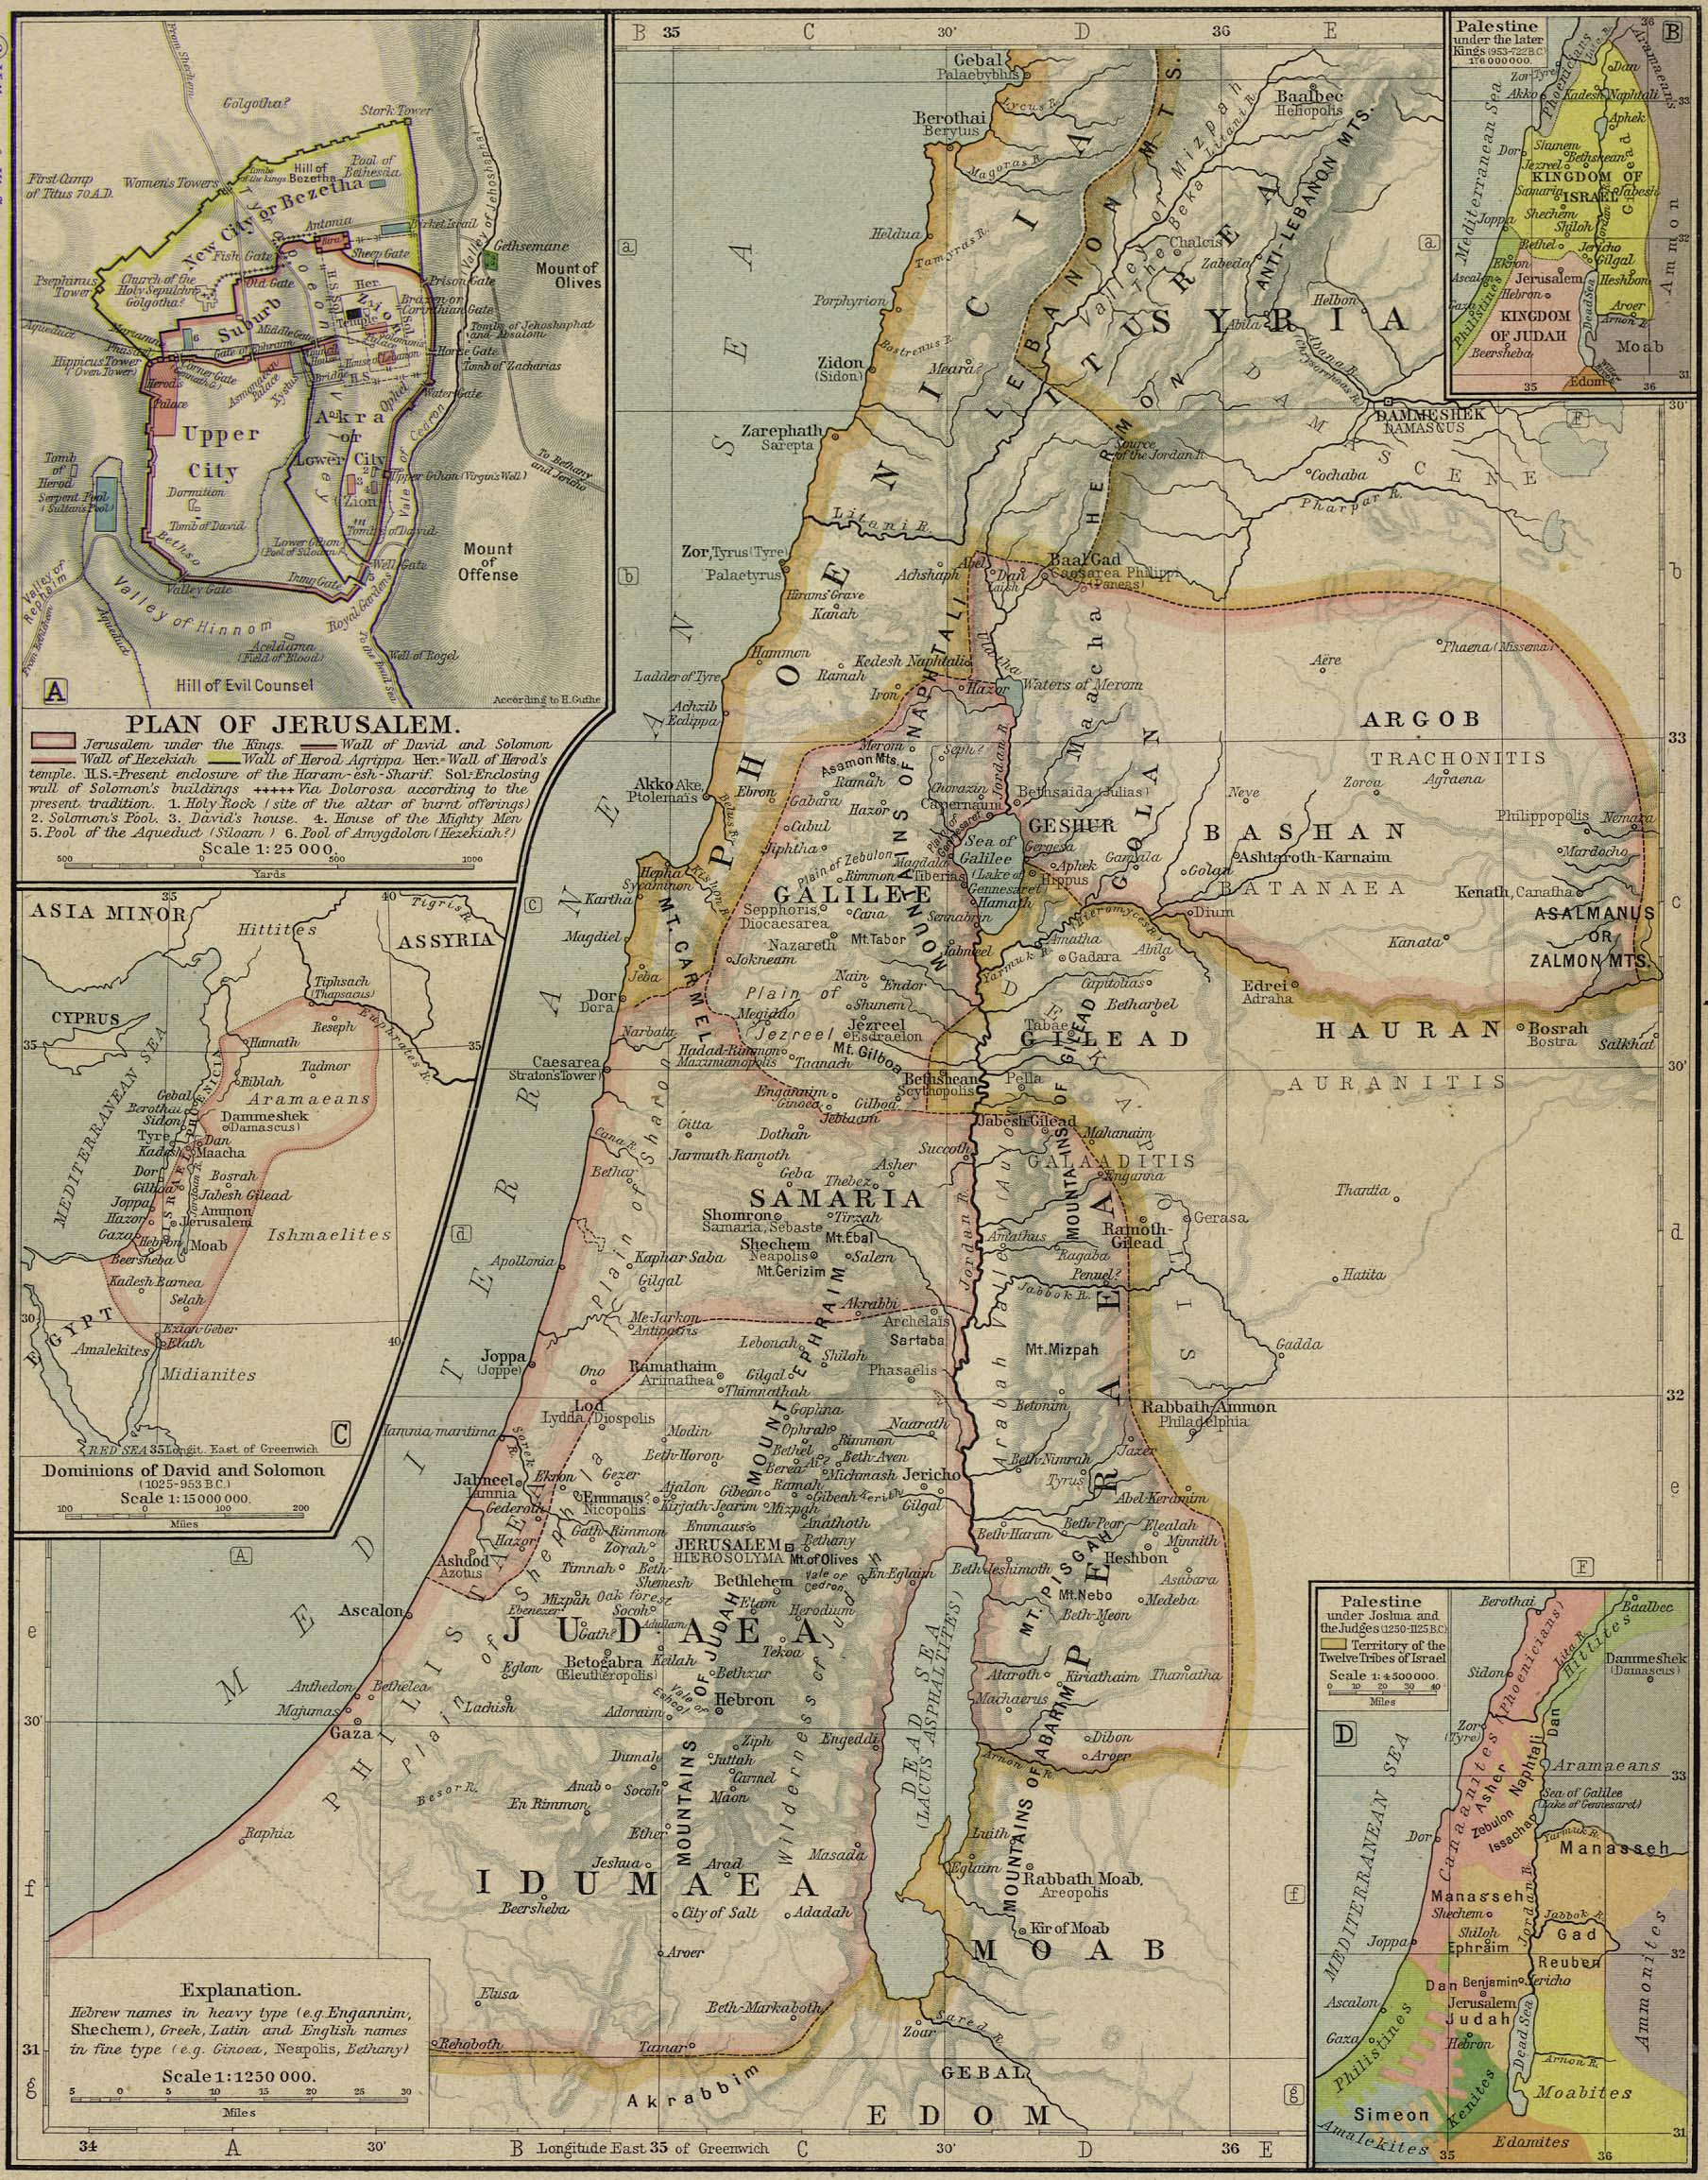 Map of Palestine1250 BC - AD 60with inset of Jerusalem